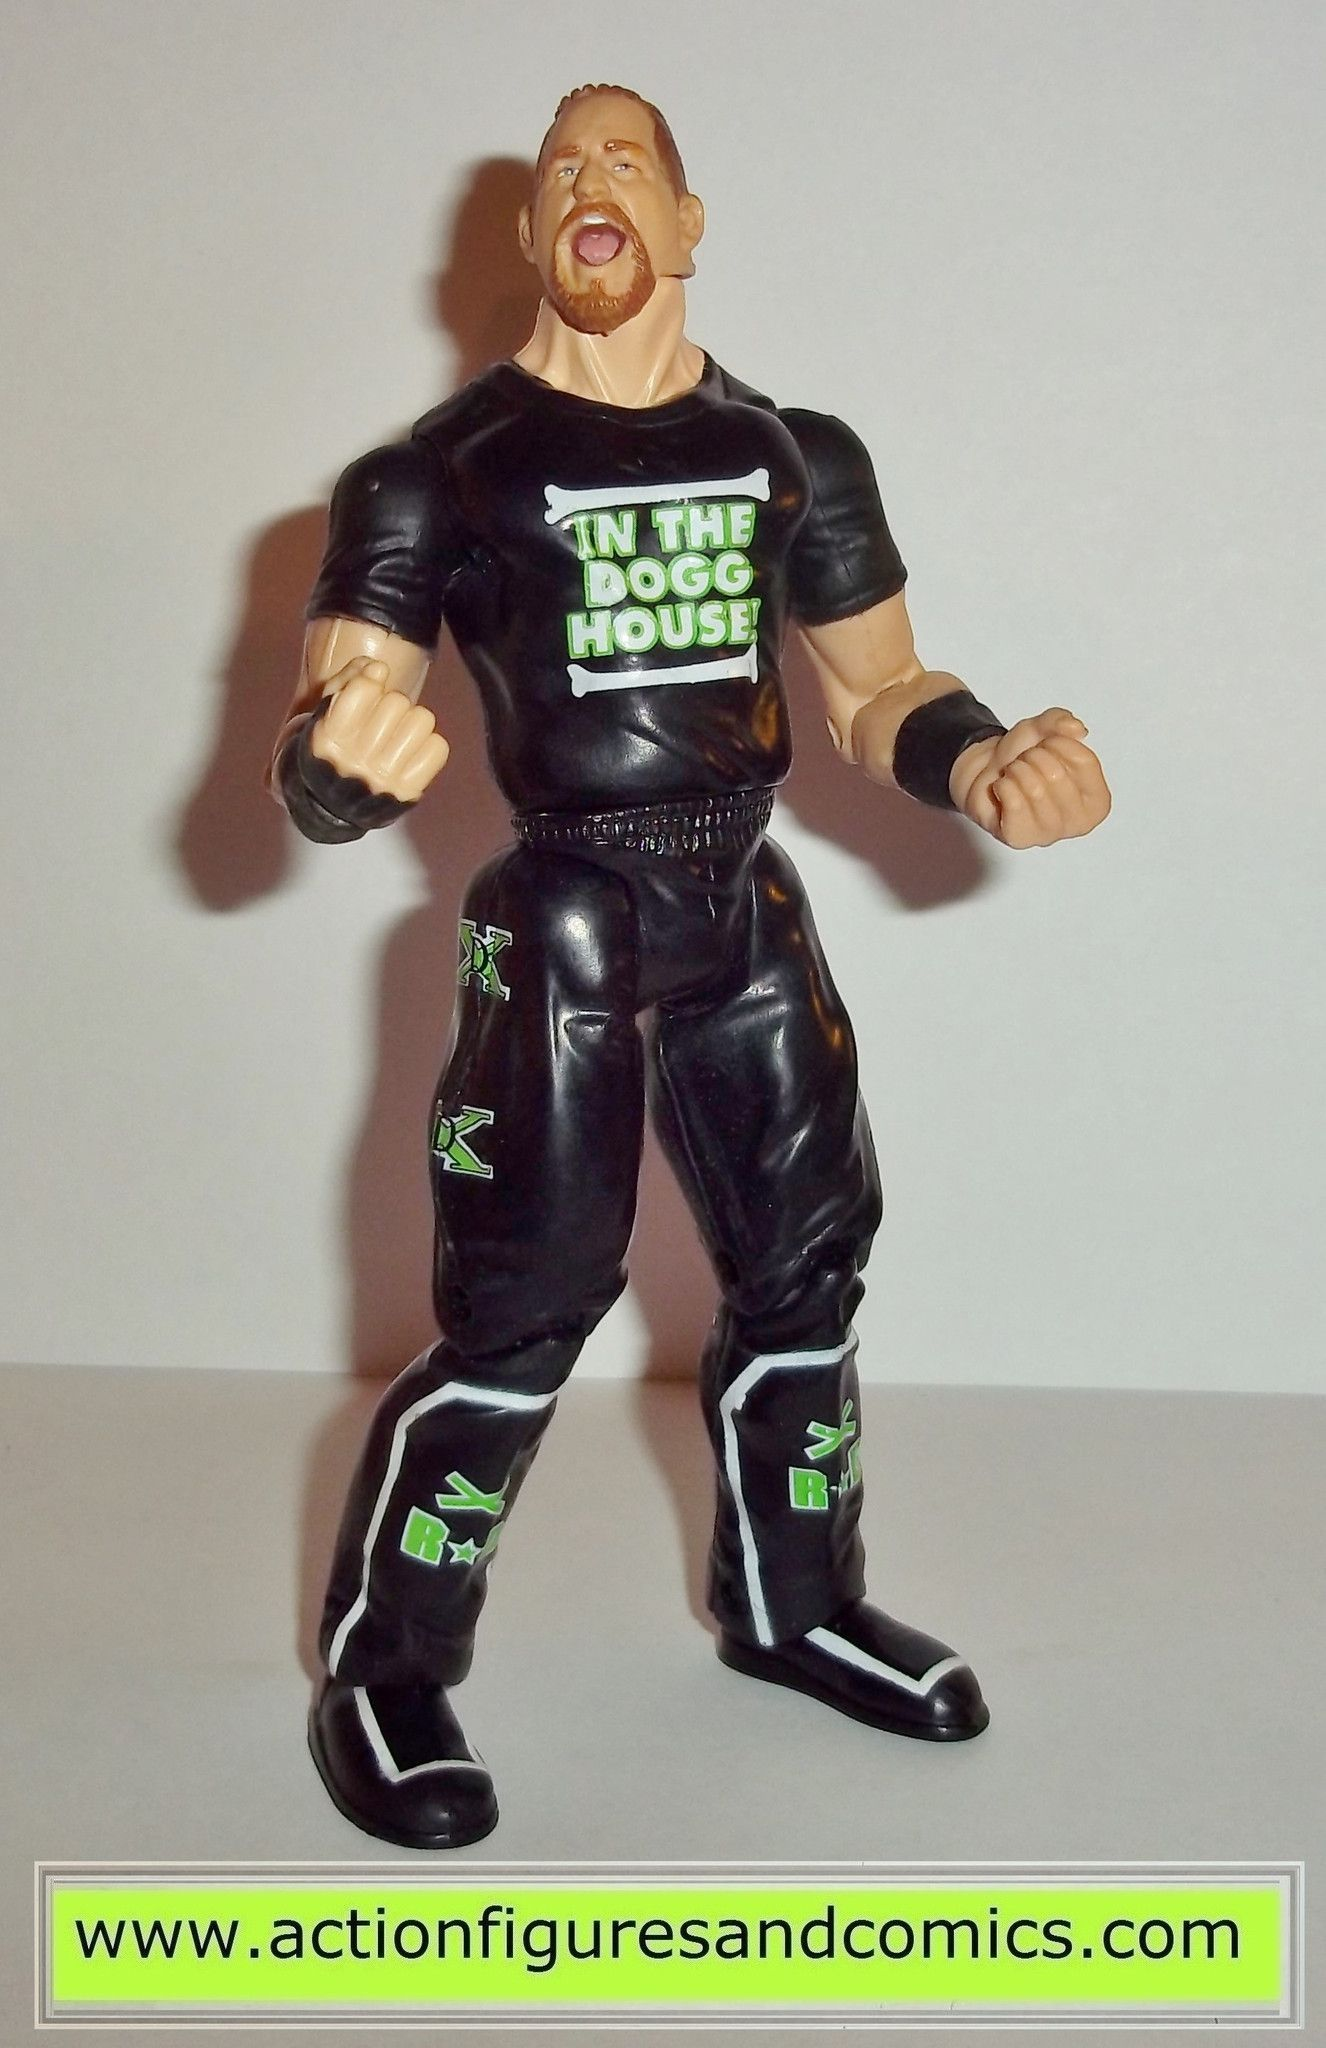 wrestling wwe action figures road dogg jesse james in the house shirt jakks pacific toys wwf